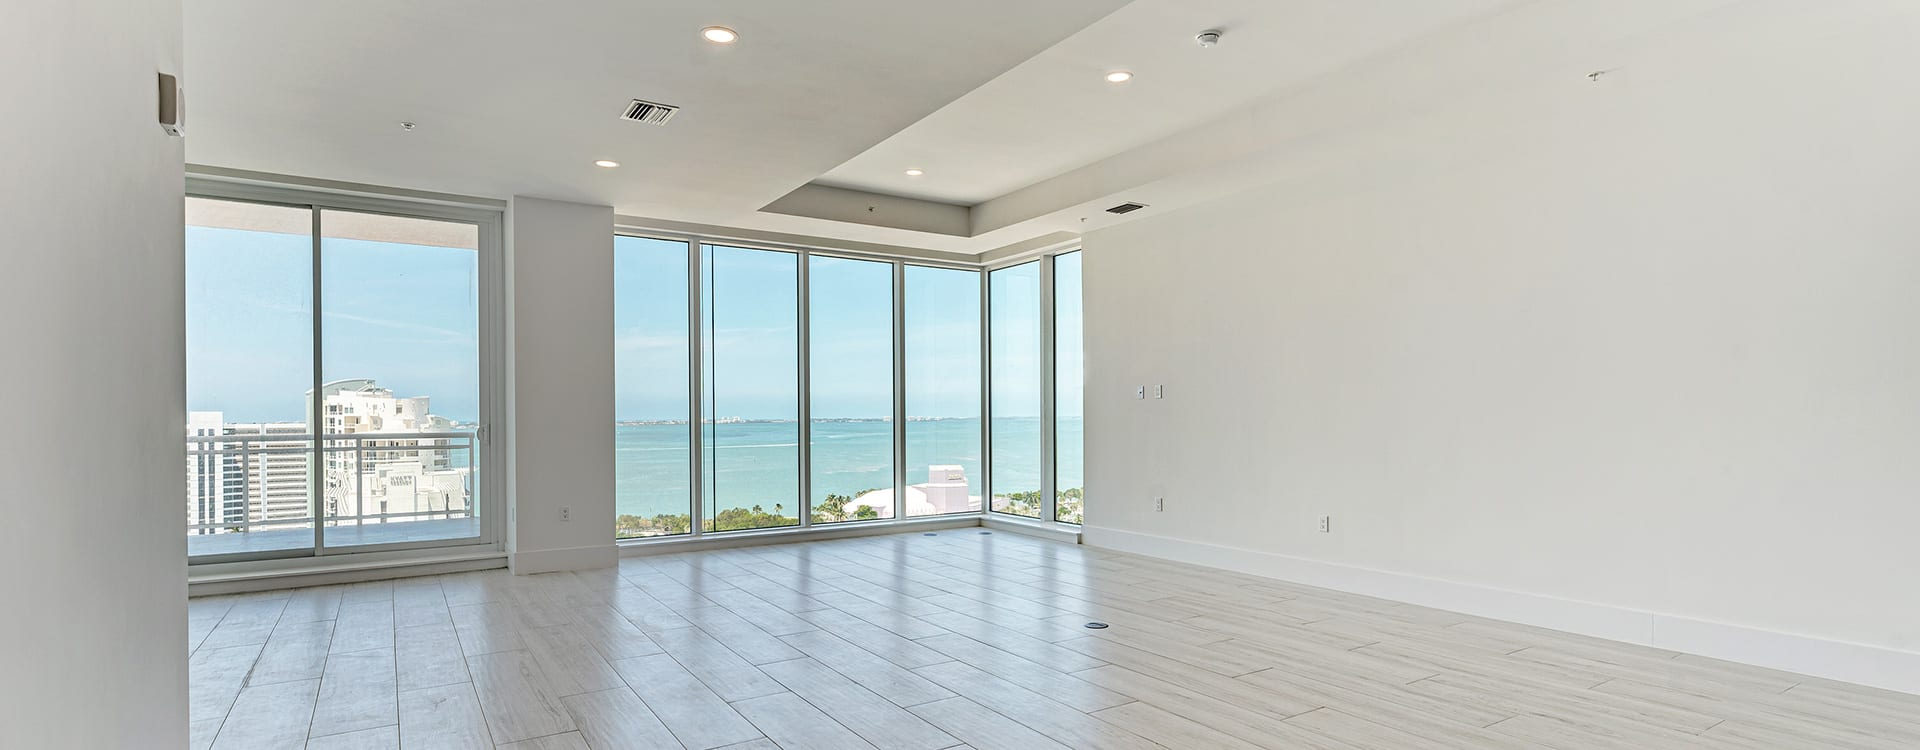 large room at BLVD Sarasota Residence 1603